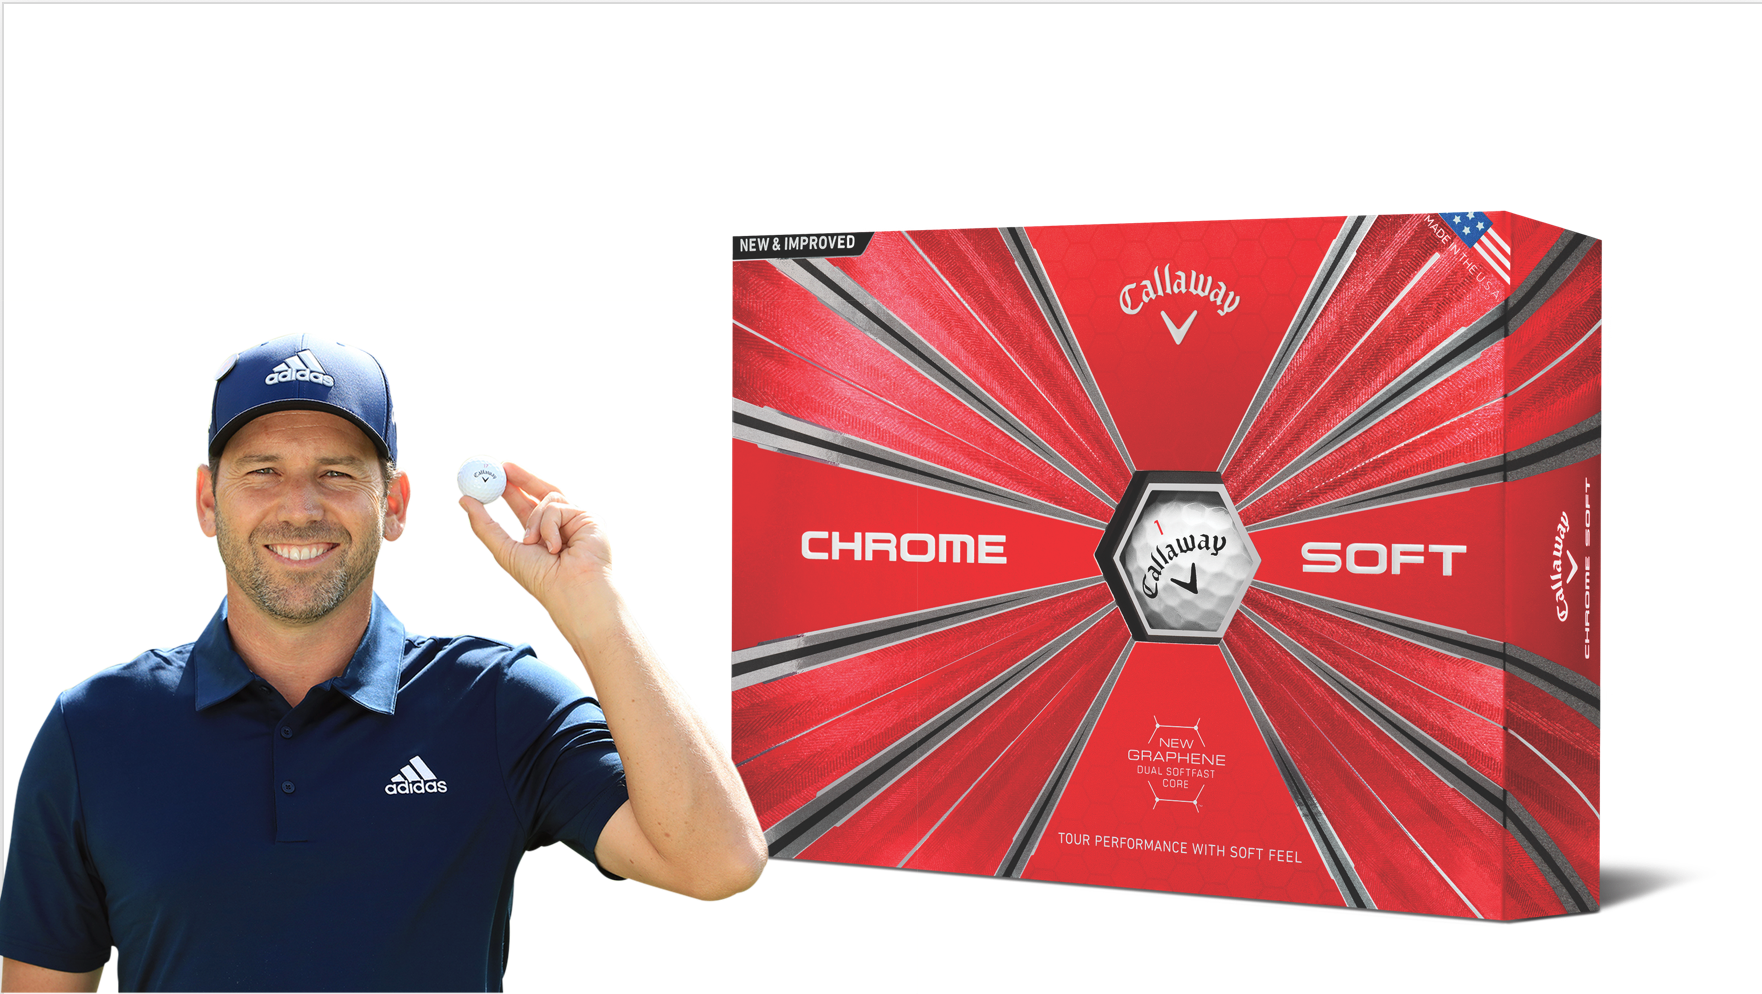 Win a year's supply of Callaway's all-new Chrome Soft balls sweepstakes